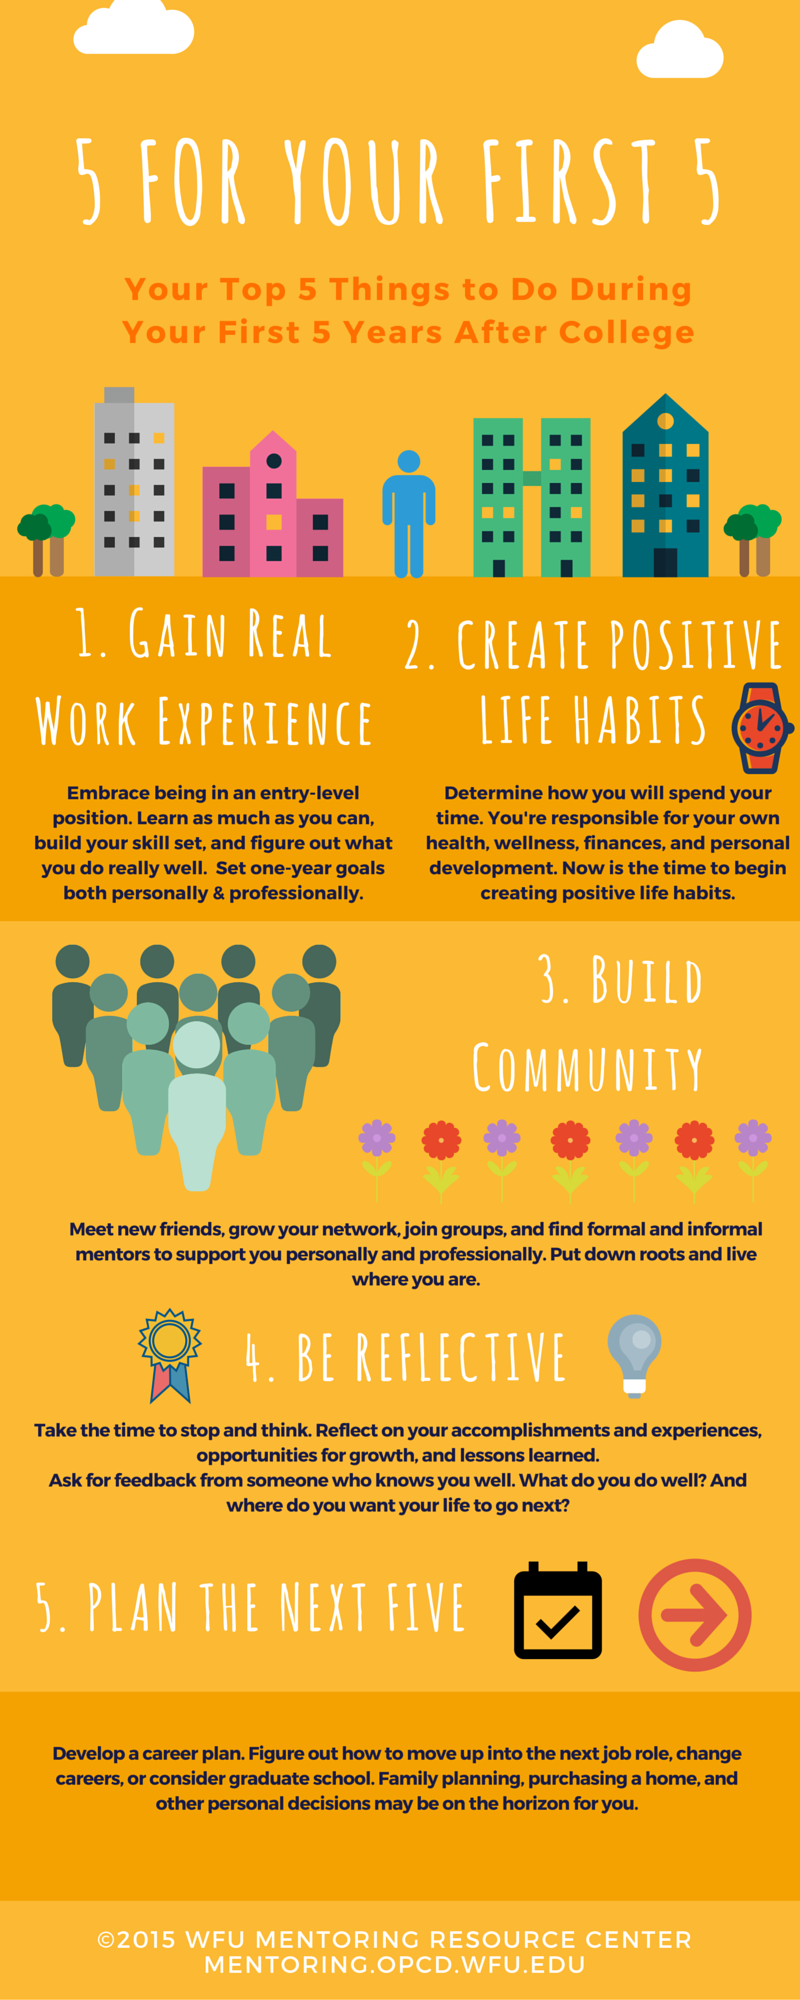 Graphic of 5 Things to do during your 5 years after college: 1. Gain real world work experience, 2. Create positive life habits, 3. Build community, 4. Be reflective, and 5. Plan for the next five